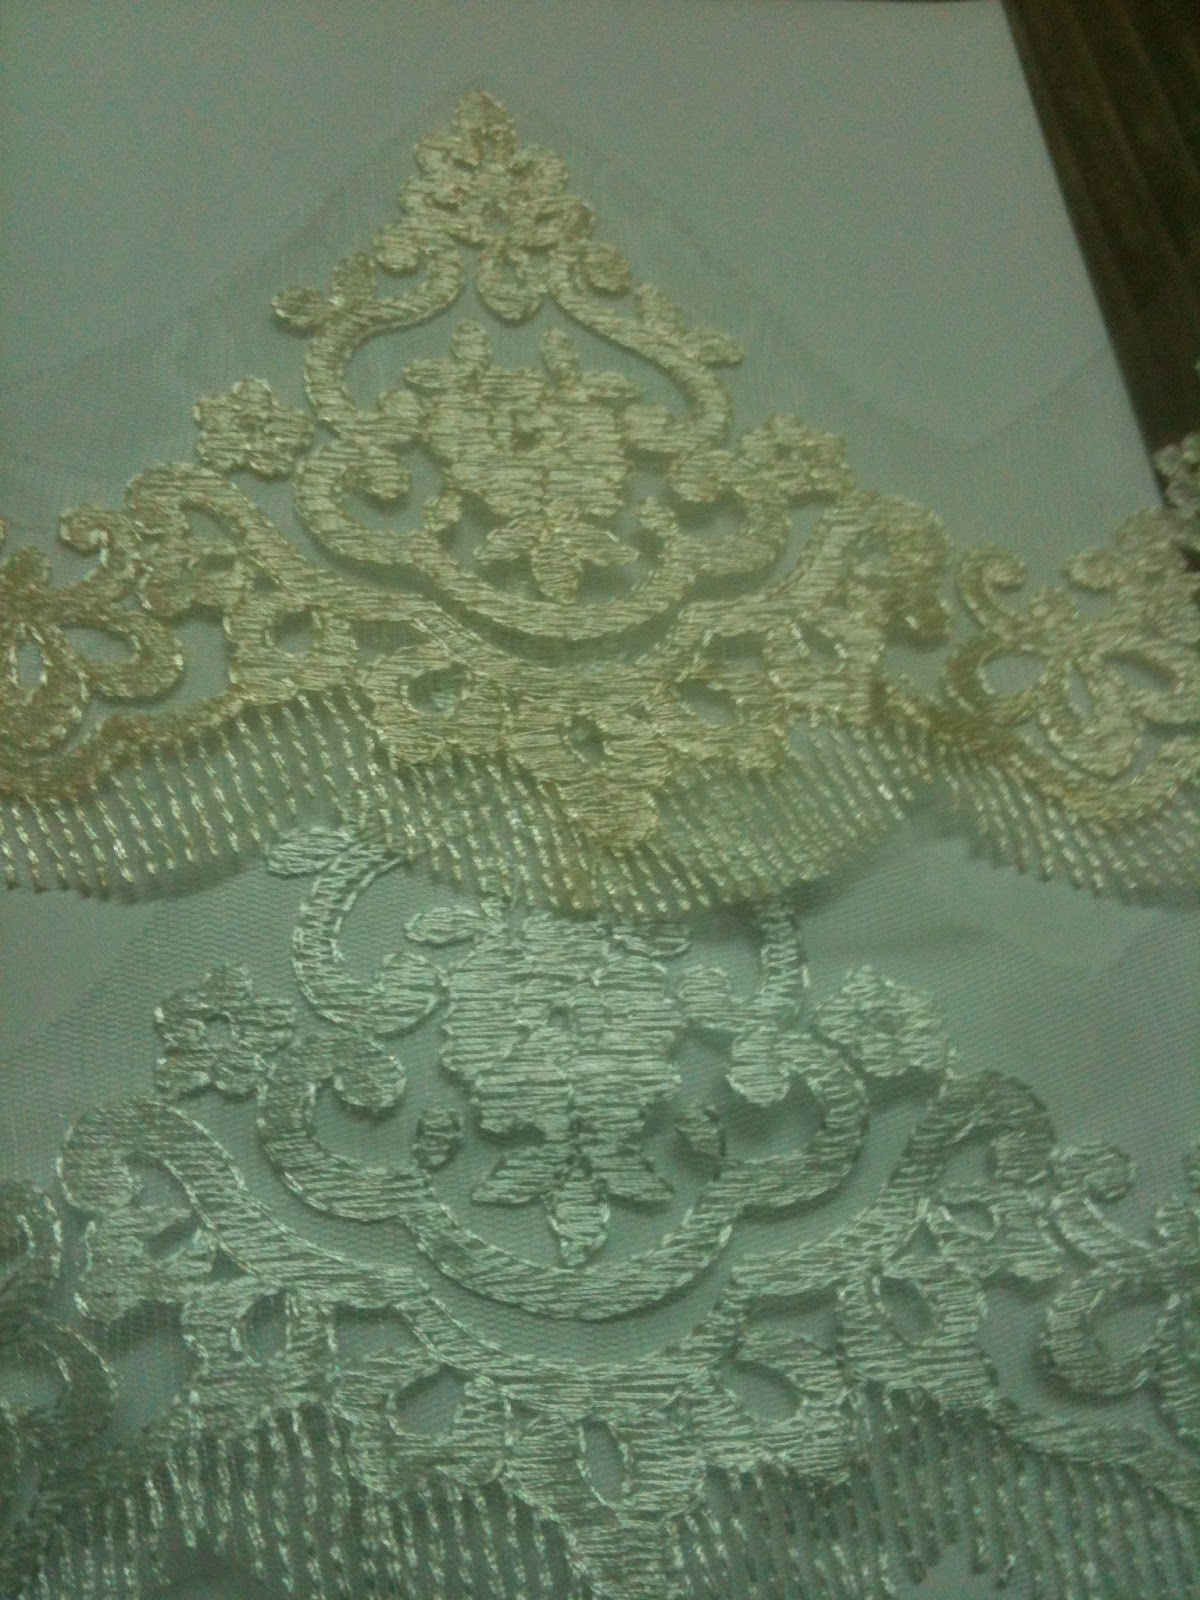 ... share to twitter share to facebook labels border lace border lace